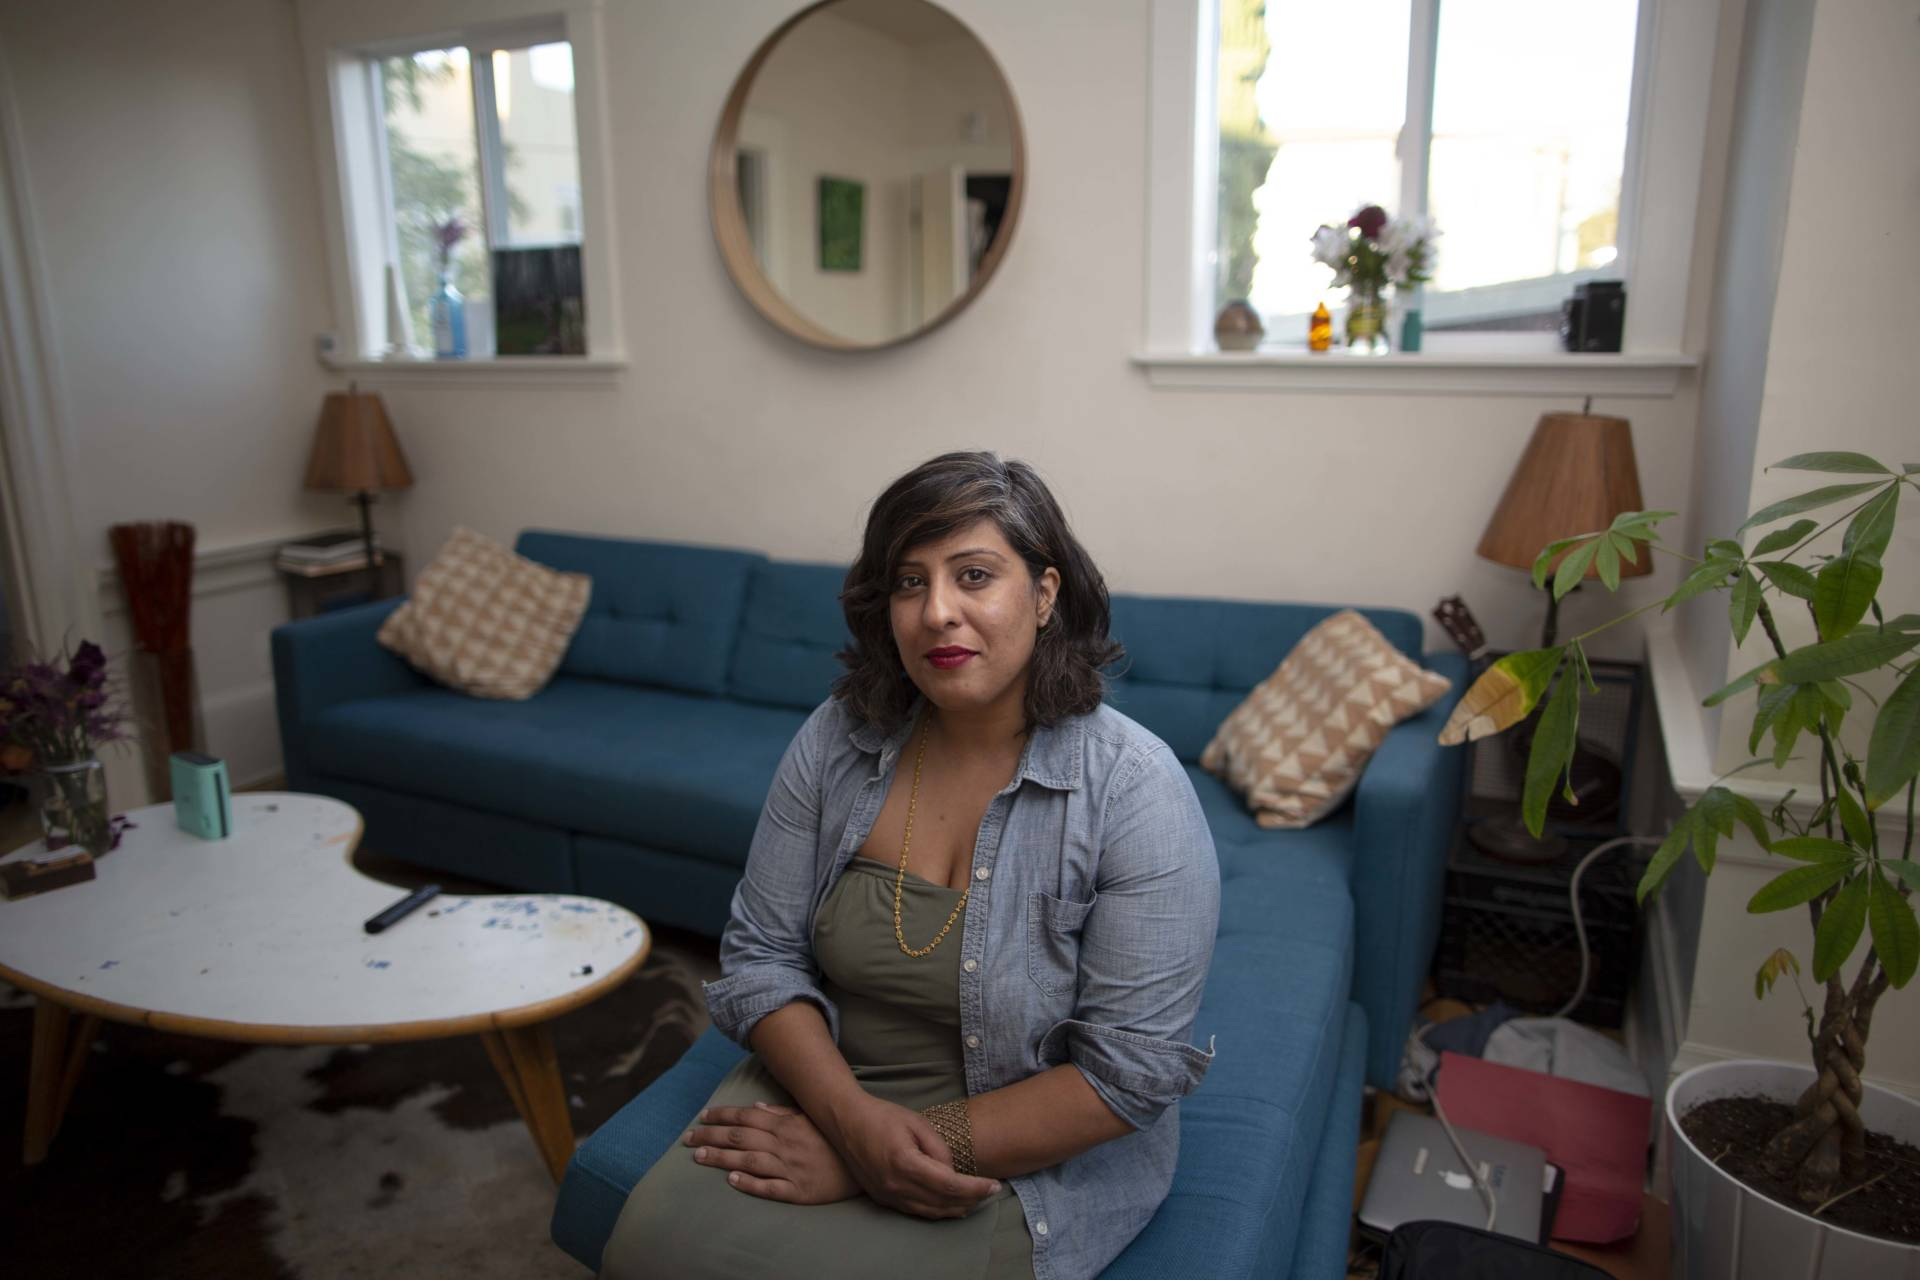 Jas Johl in the living room of her home in North Oakland. Johl pays about $13,000 a year in property taxes, far more than many of her neighbors. Sean Havey for California Dream